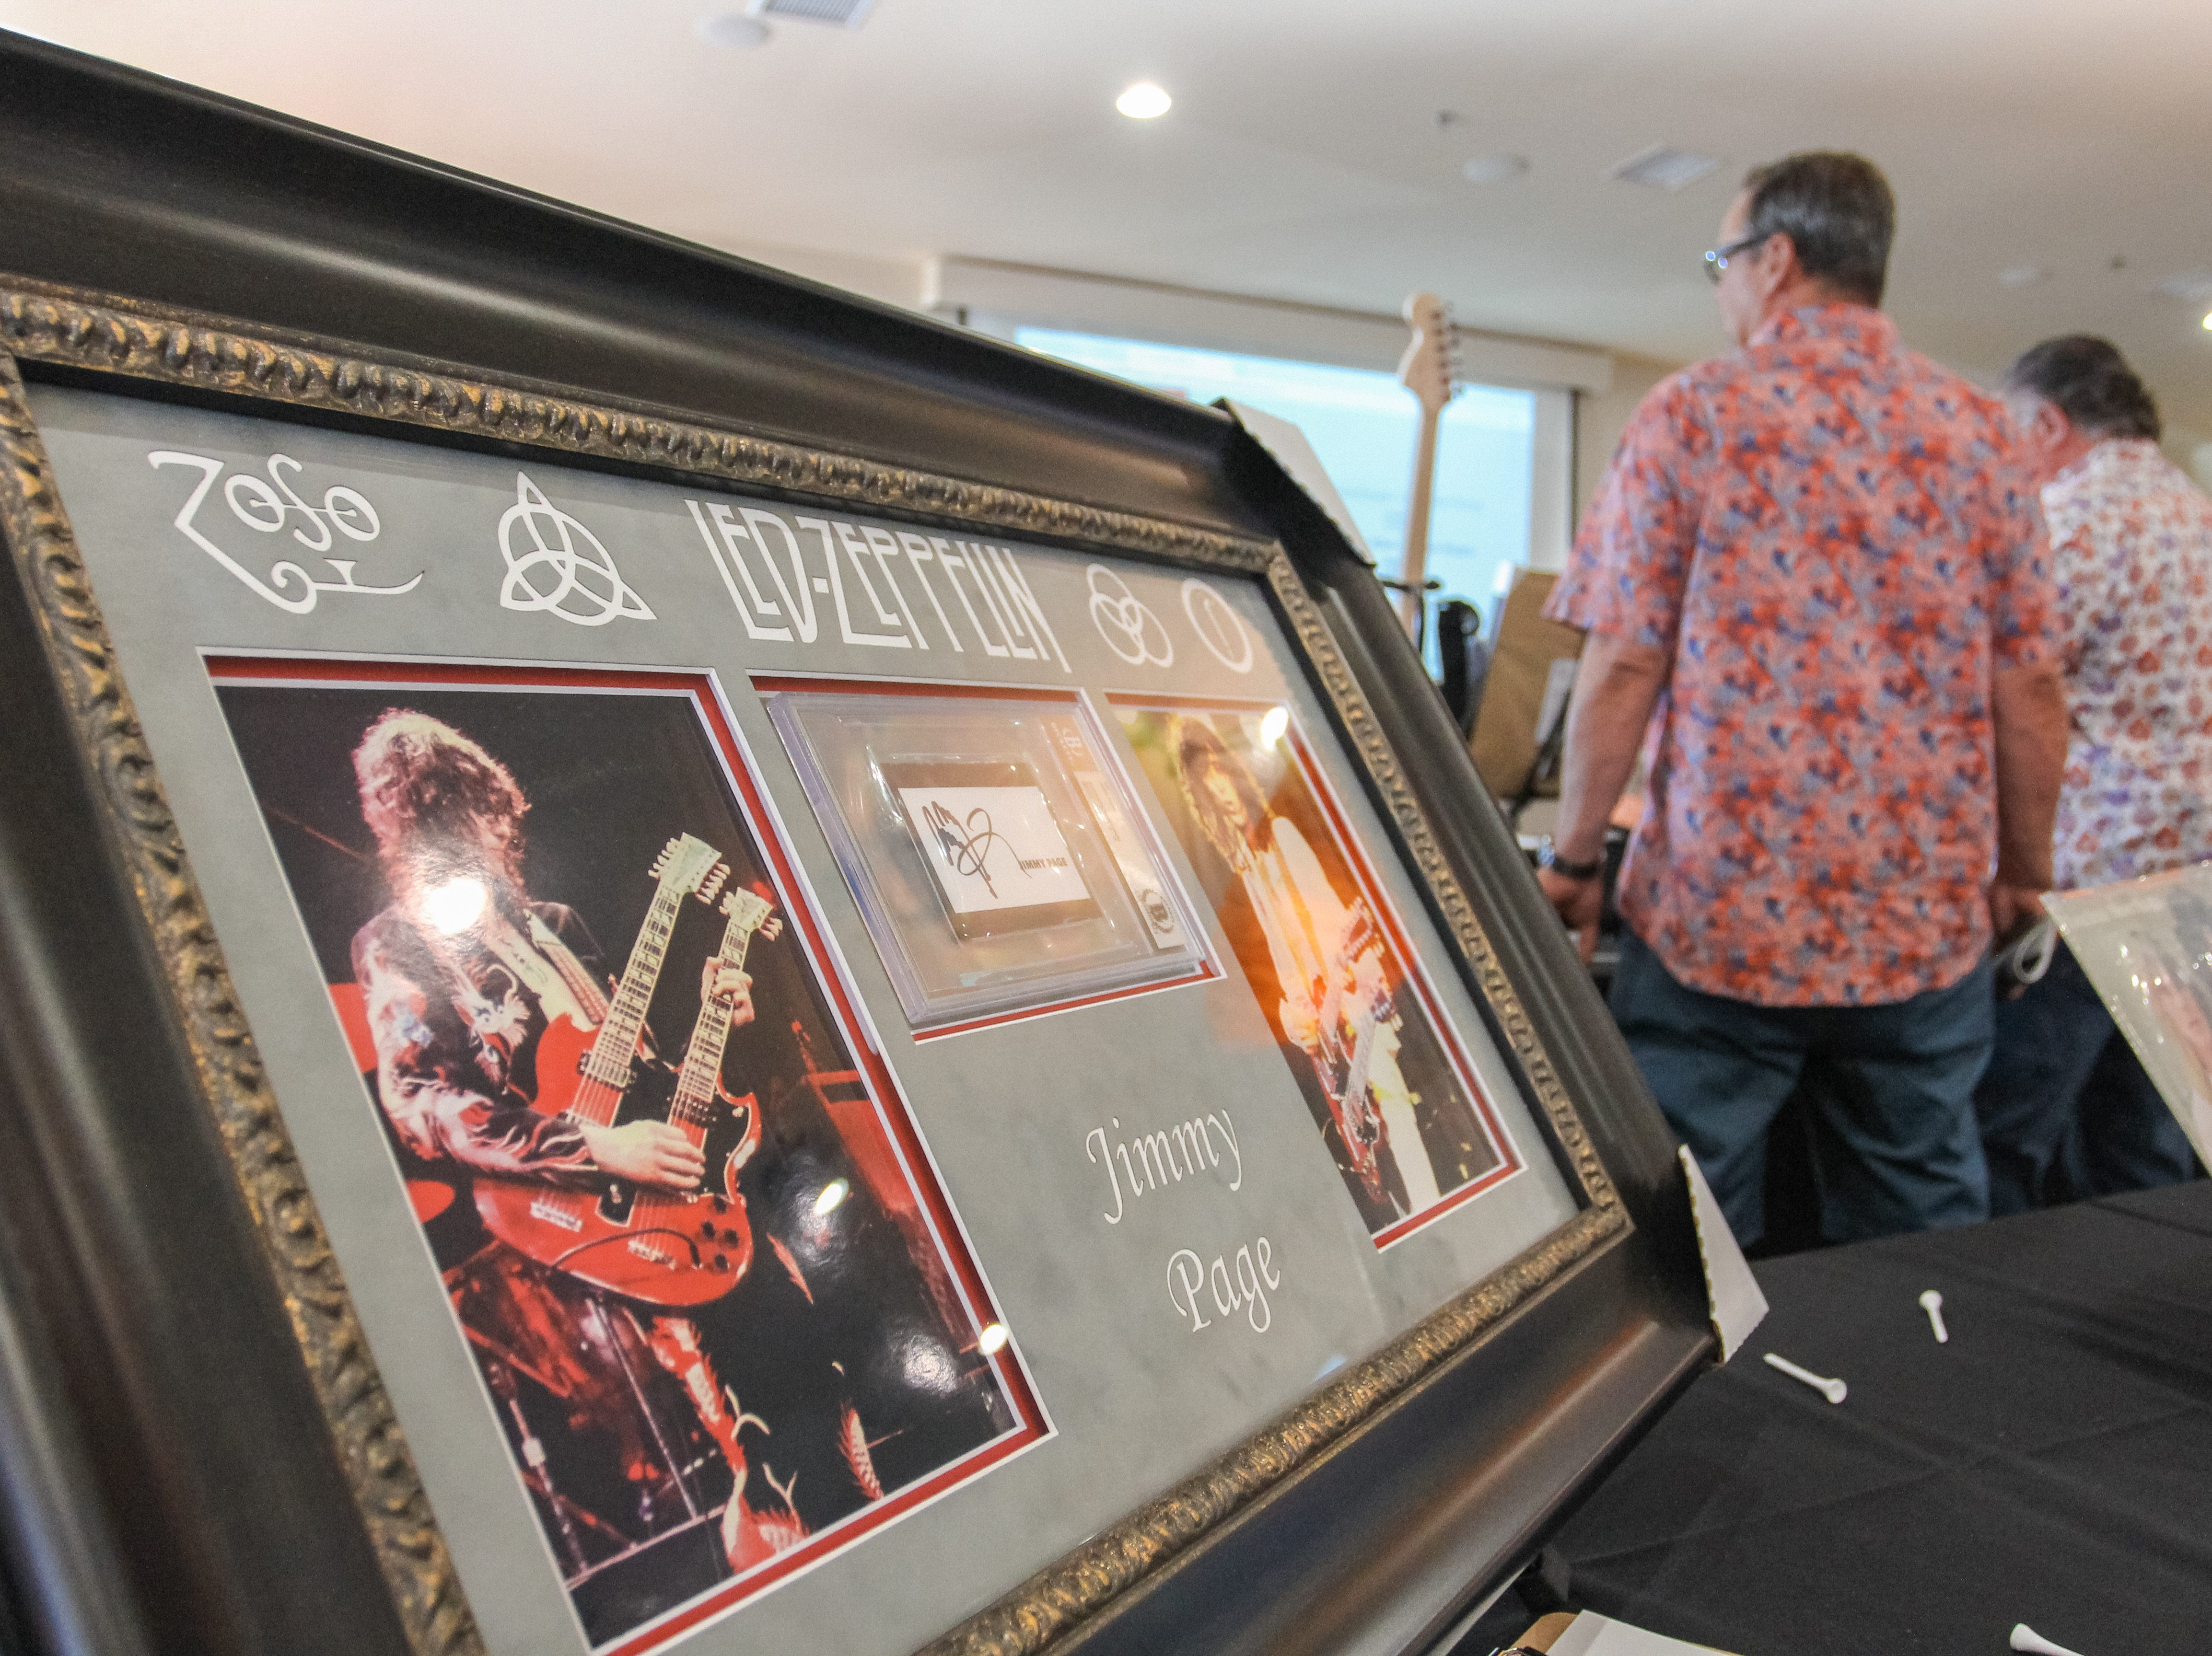 Guests bid on items at Alice Cooper's Rock & Roll Fundraising Bash at the Las Sendas Golf Club in Mesa on April 27, 2019.